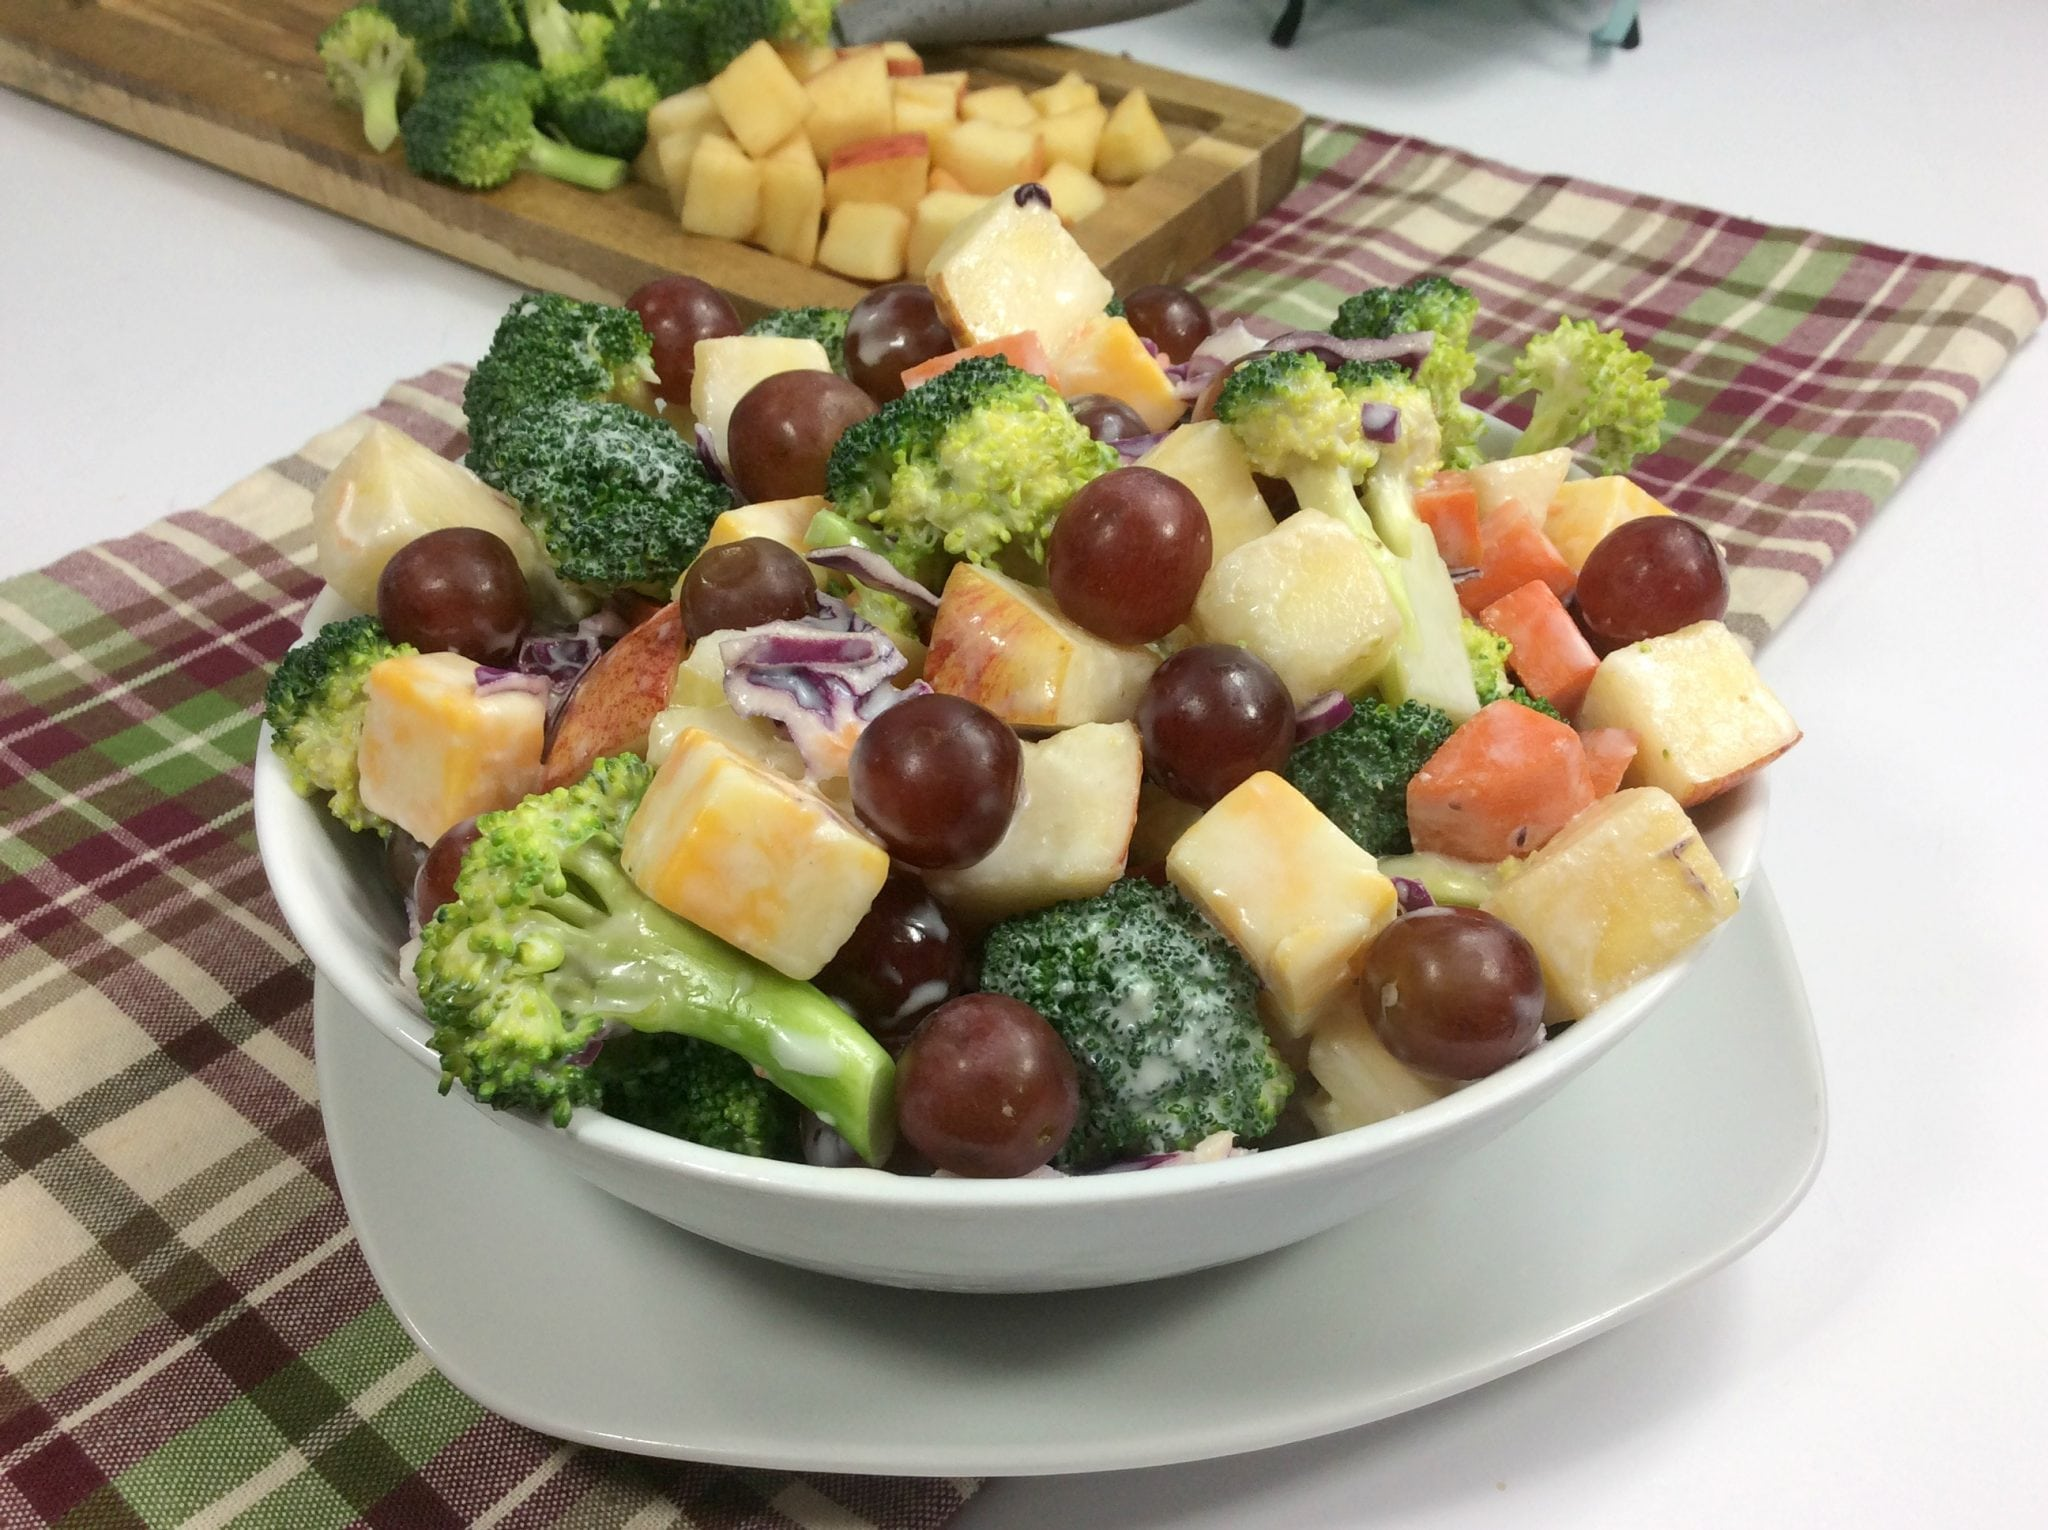 Weight Watchers broccoli salad in a white bowl on top of plaid towel